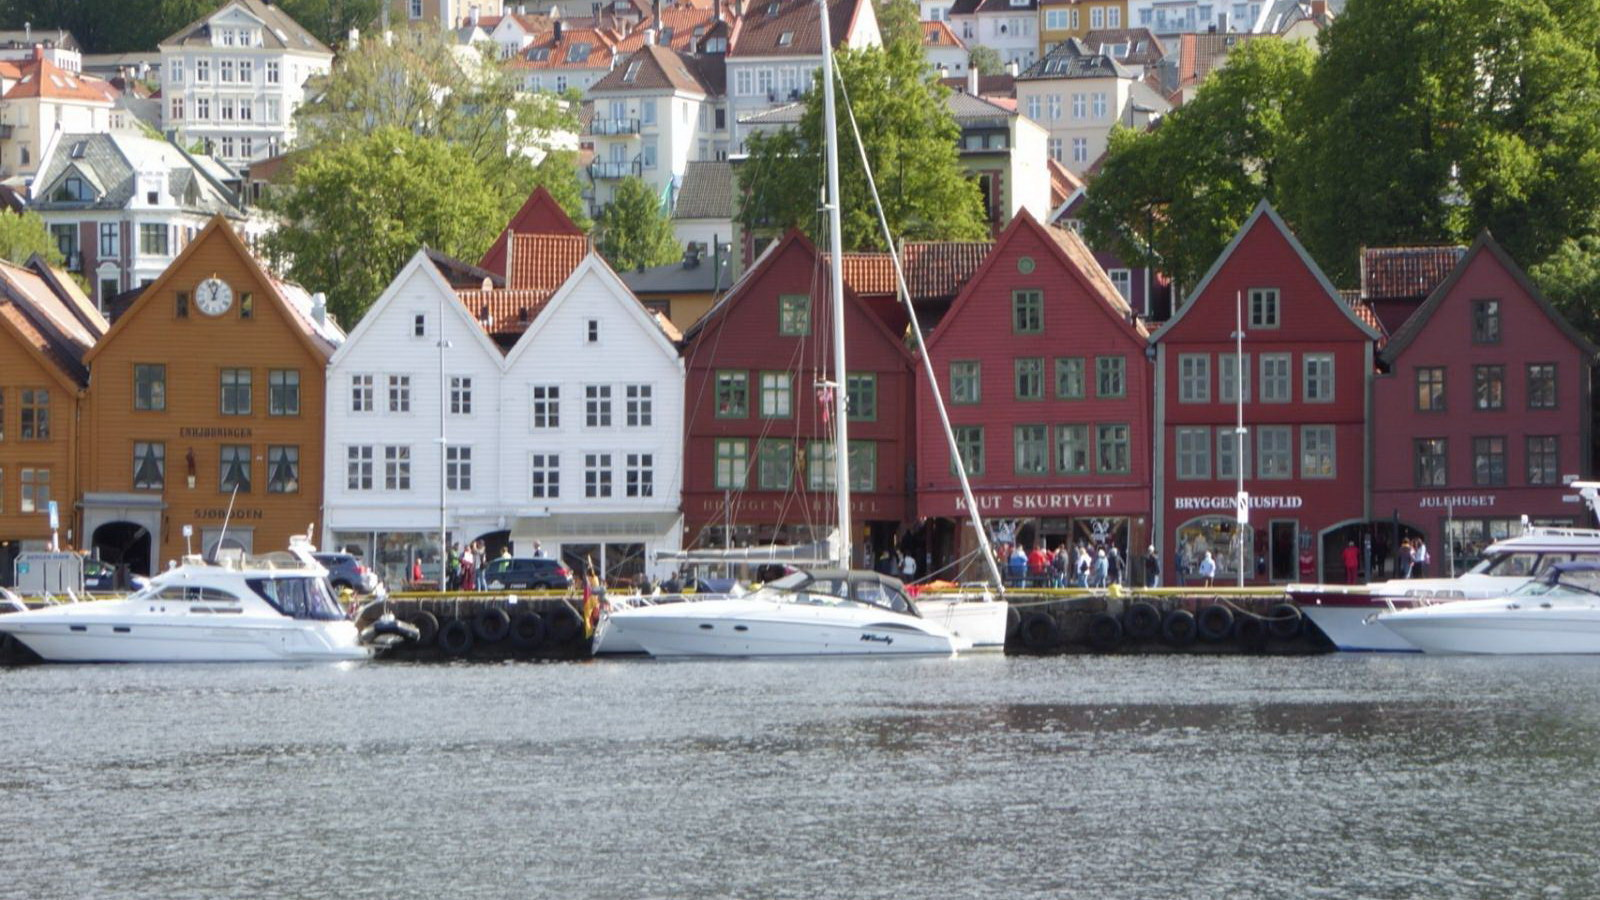 Bergen, Norway, once home to the Vikings of Scandinavia